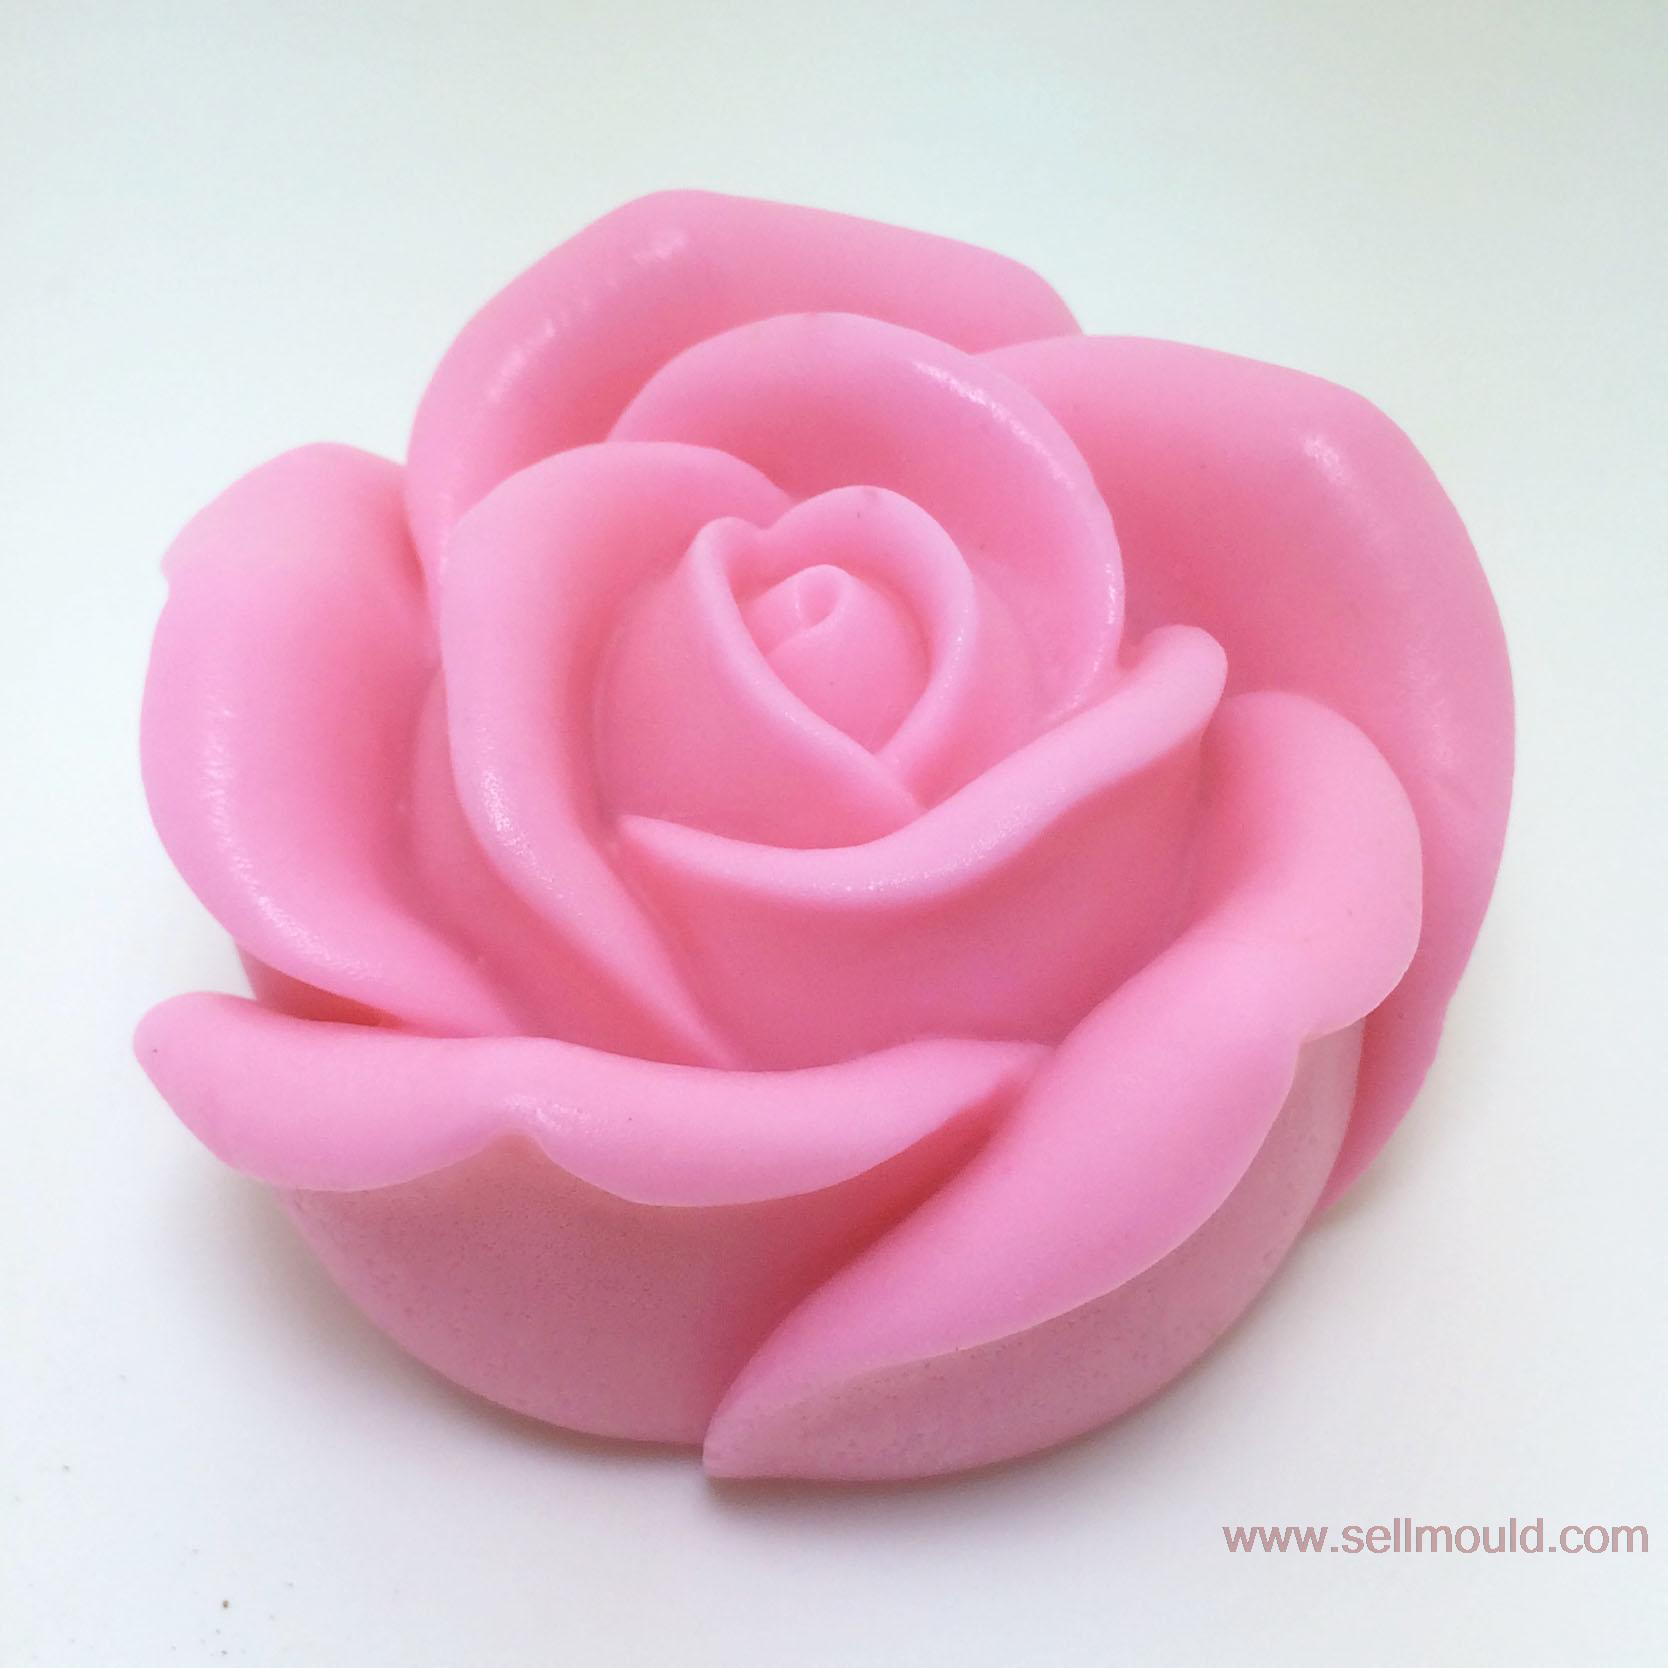 3D Rose Soap Silicone Mold Silica Gel Mould Silicon Candle Moulds Decorating Mould Wholesale AX020(China)